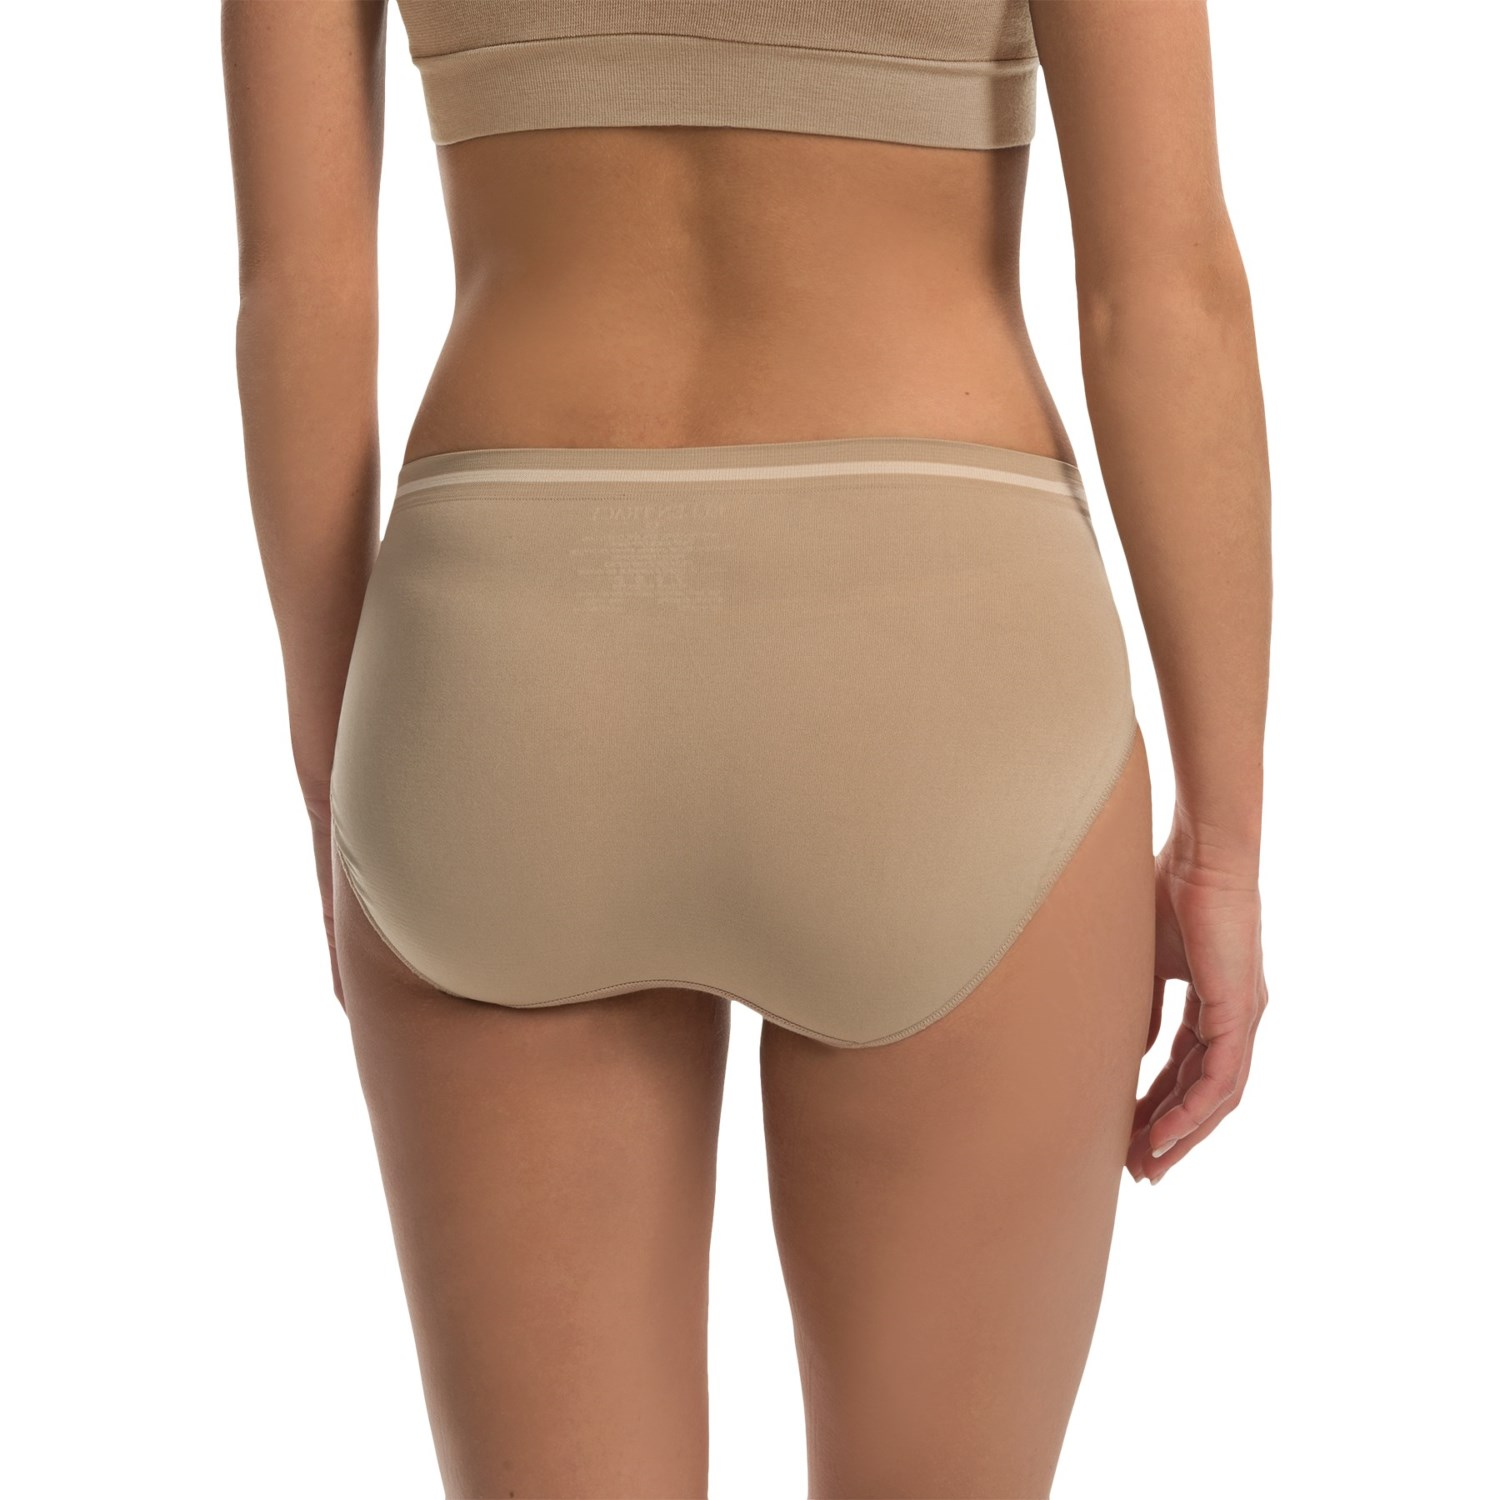 nouvelle panty. nouvelle brief panties. seamless brief panties. brief panties. are these the comfy panties you want?. beautifully smooth. beautifully smooth. full cut back coverage.